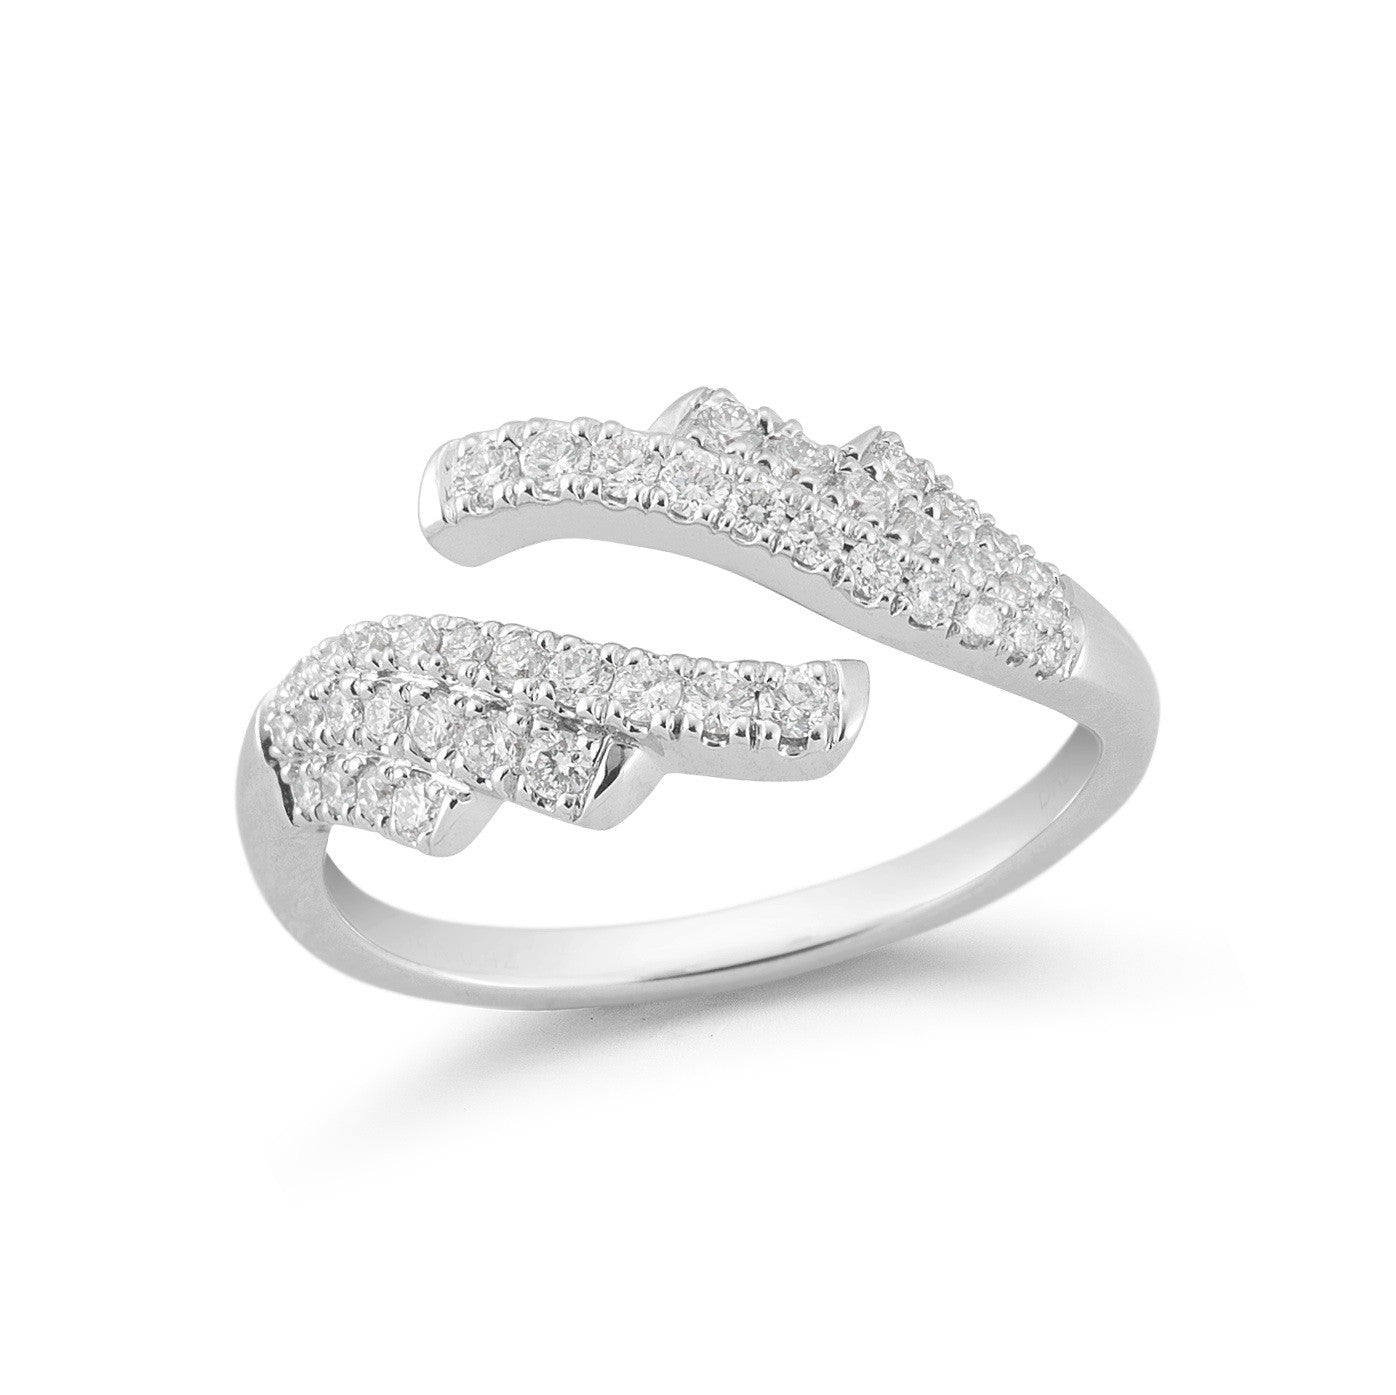 Sophia Ryan 14K Diamond Ring